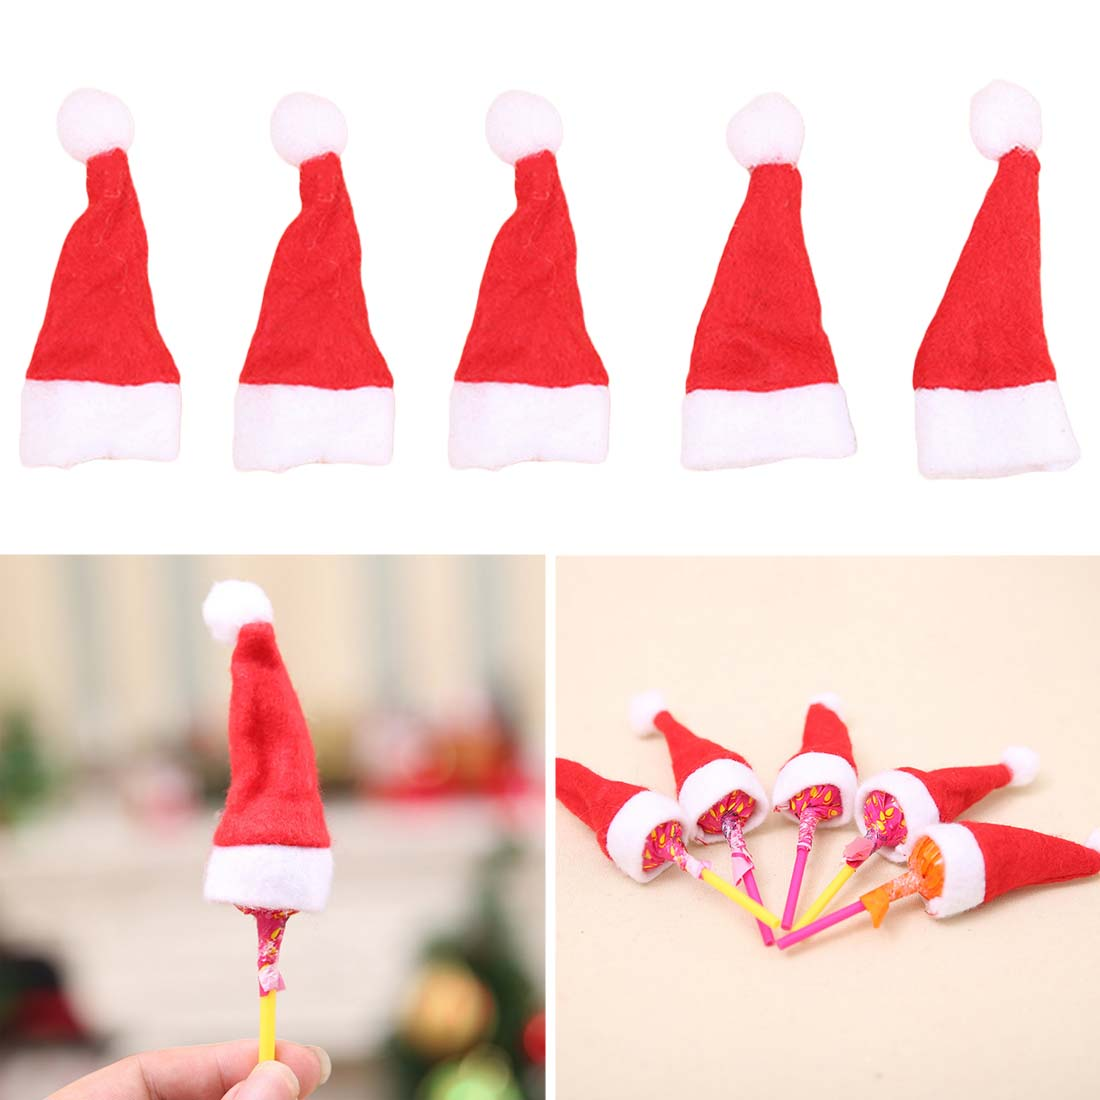 Christmas Home & Garden Temperate 10pcs/lot Mini Santa Claus Hat Christmas Xmas Party Holiday Lollipop Top Decorative Creative Knife Fork Bag Christmas Gift New Varieties Are Introduced One After Another